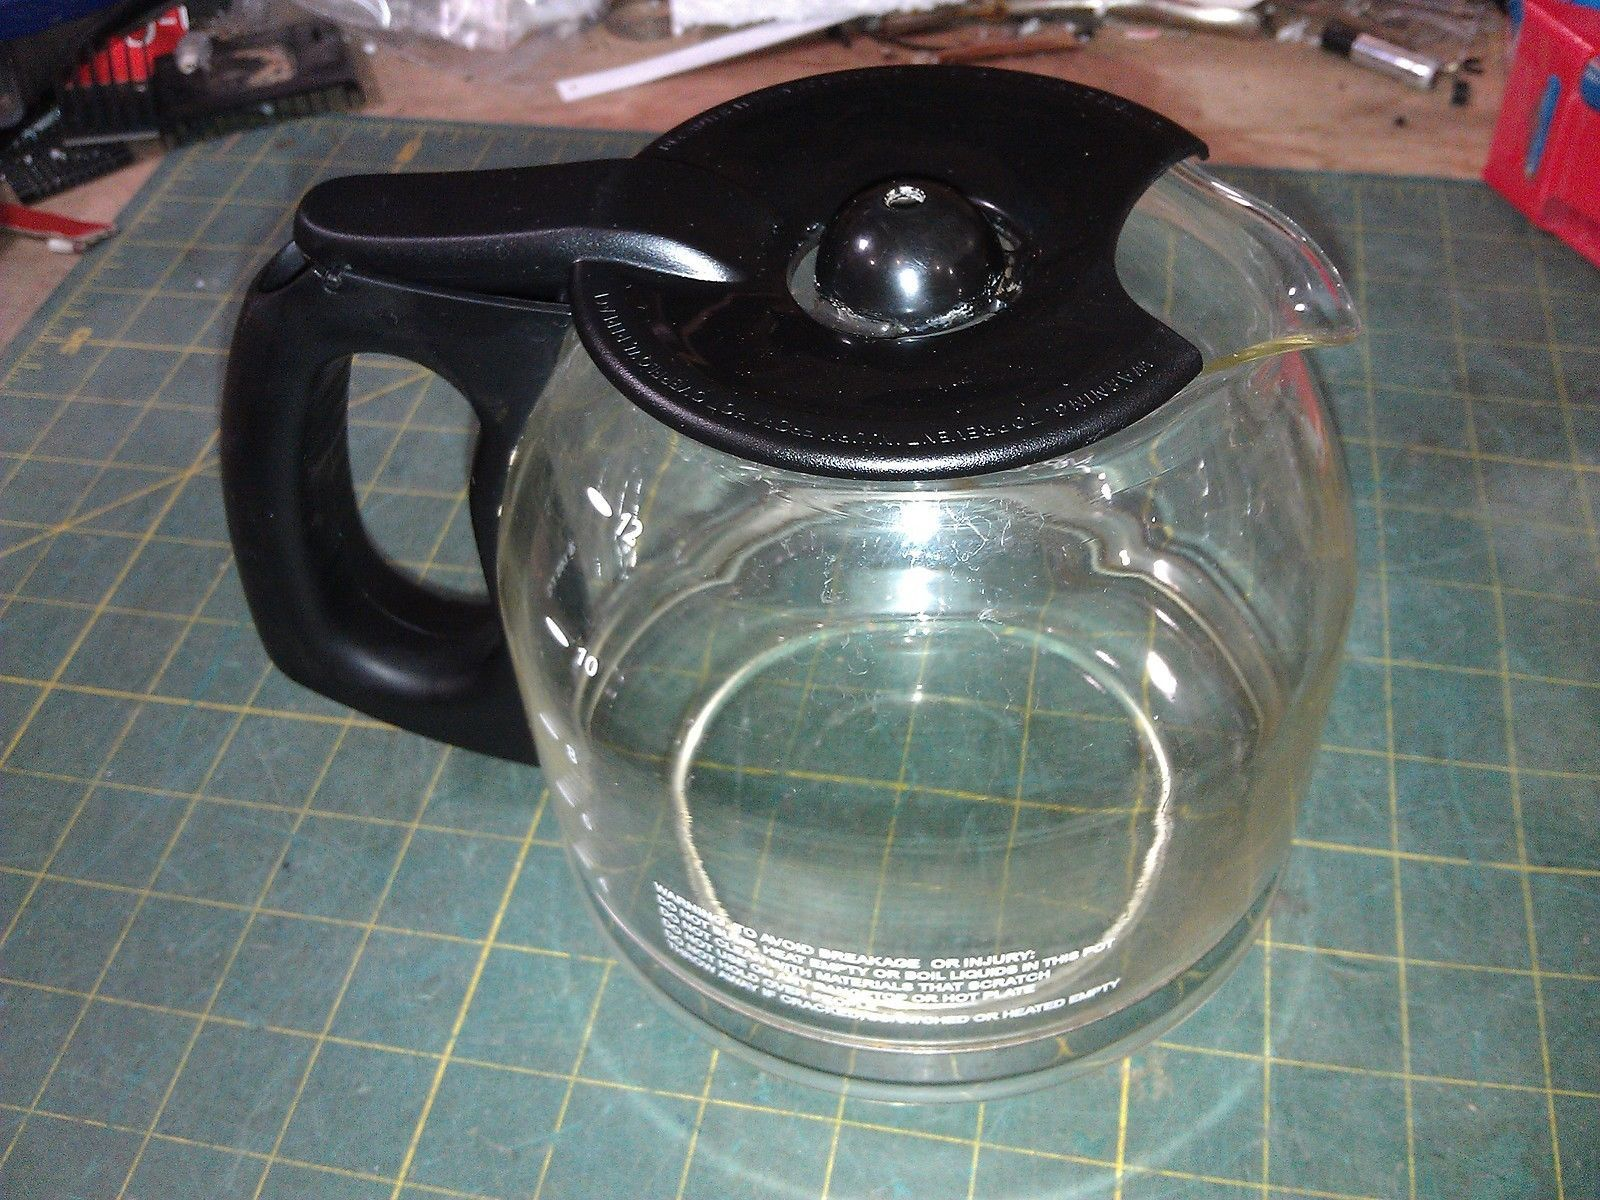 Primary image for 7II71 COFFEEPOT MR COFFEE 12CUP, GOOD CONDITION